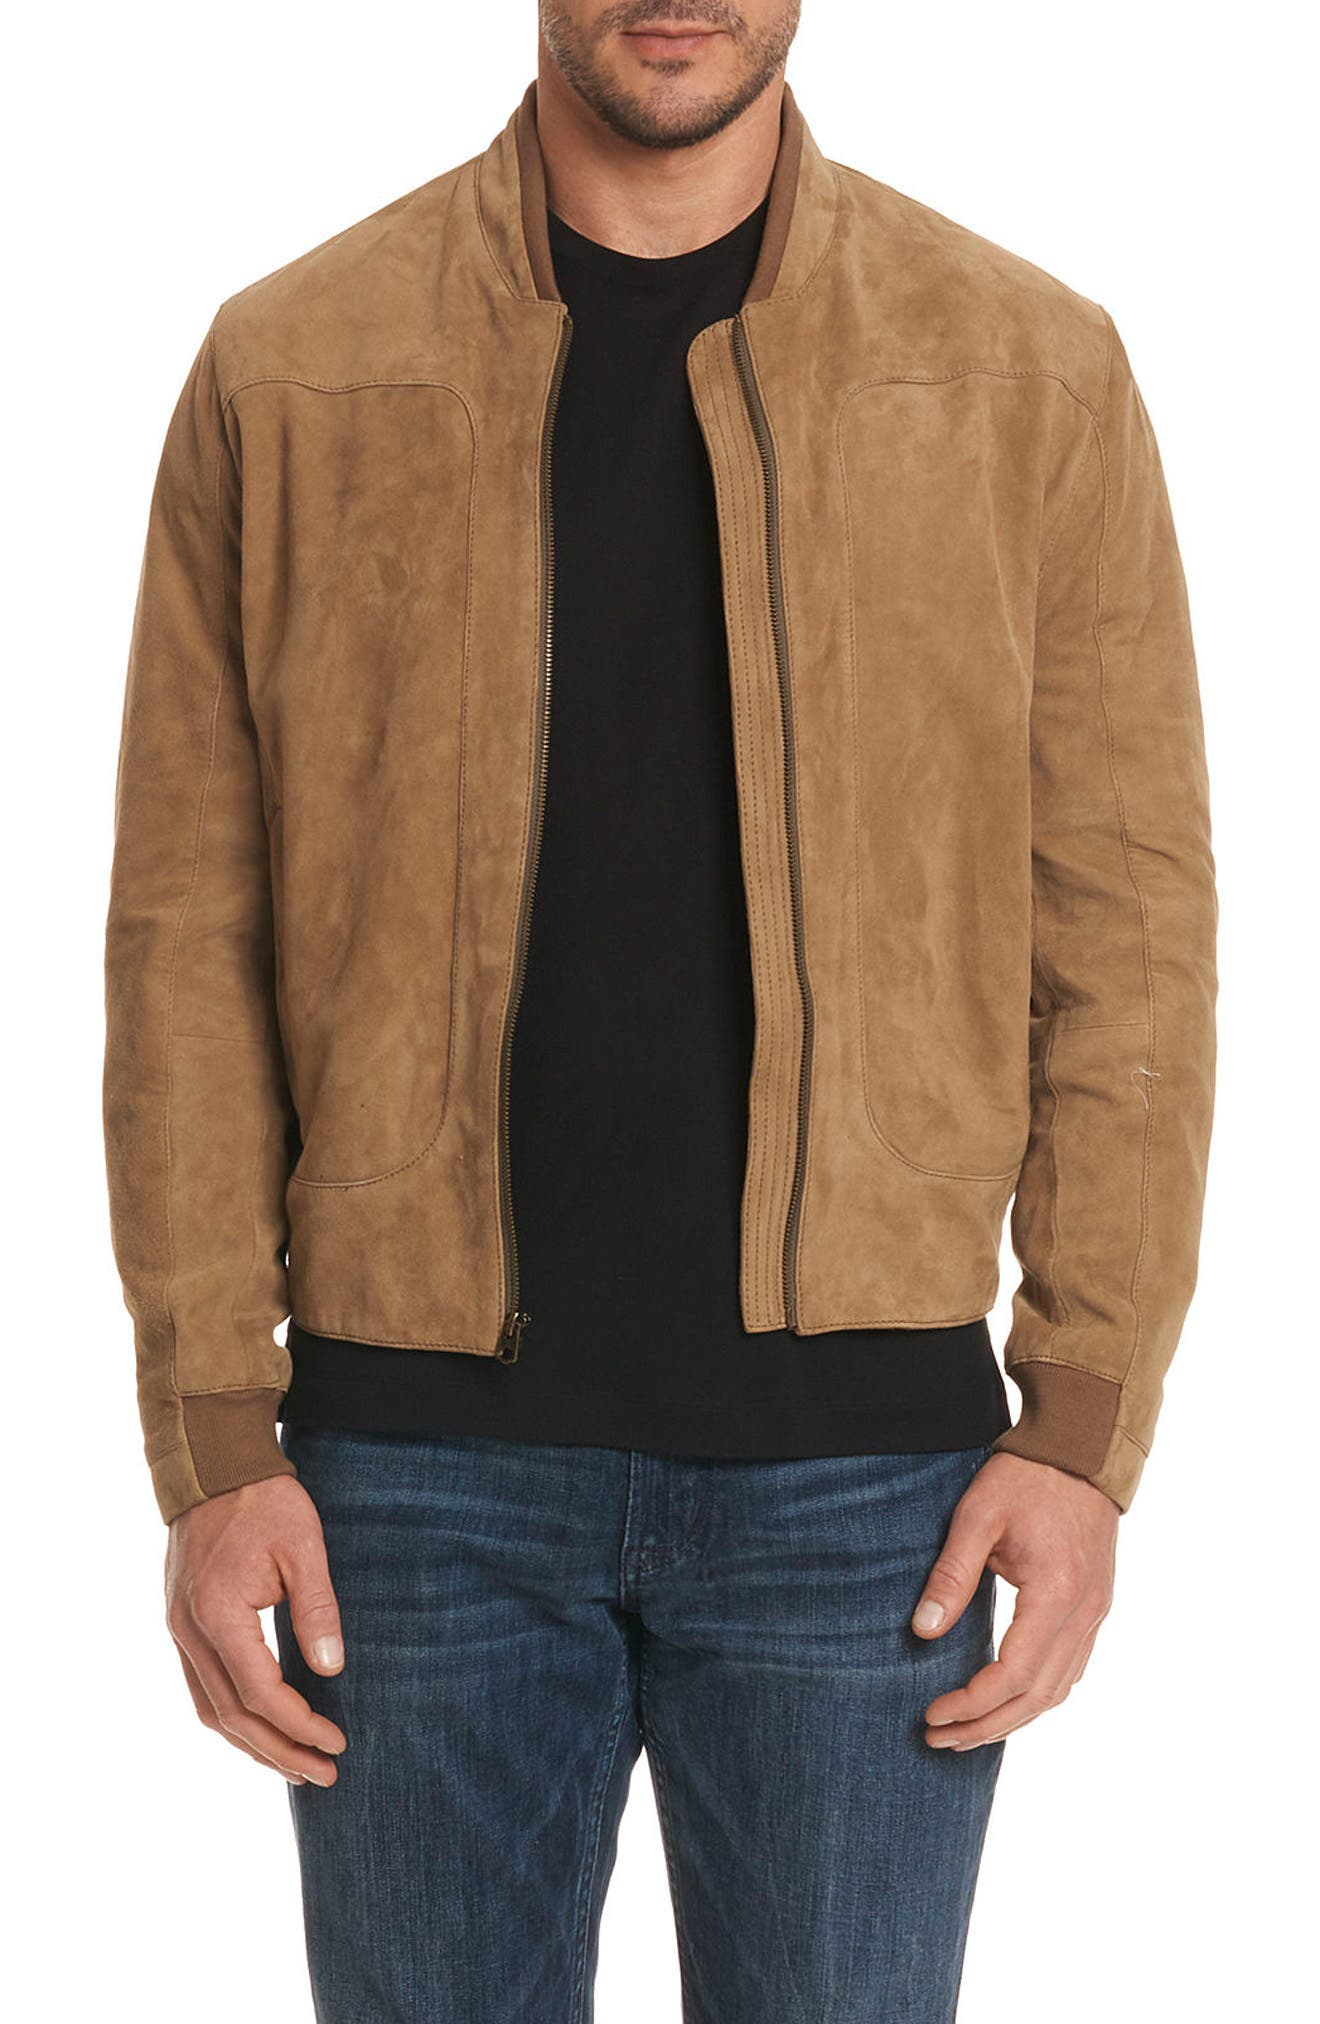 Ramos Suede Bomber Jacket,                             Main thumbnail 1, color,                             200